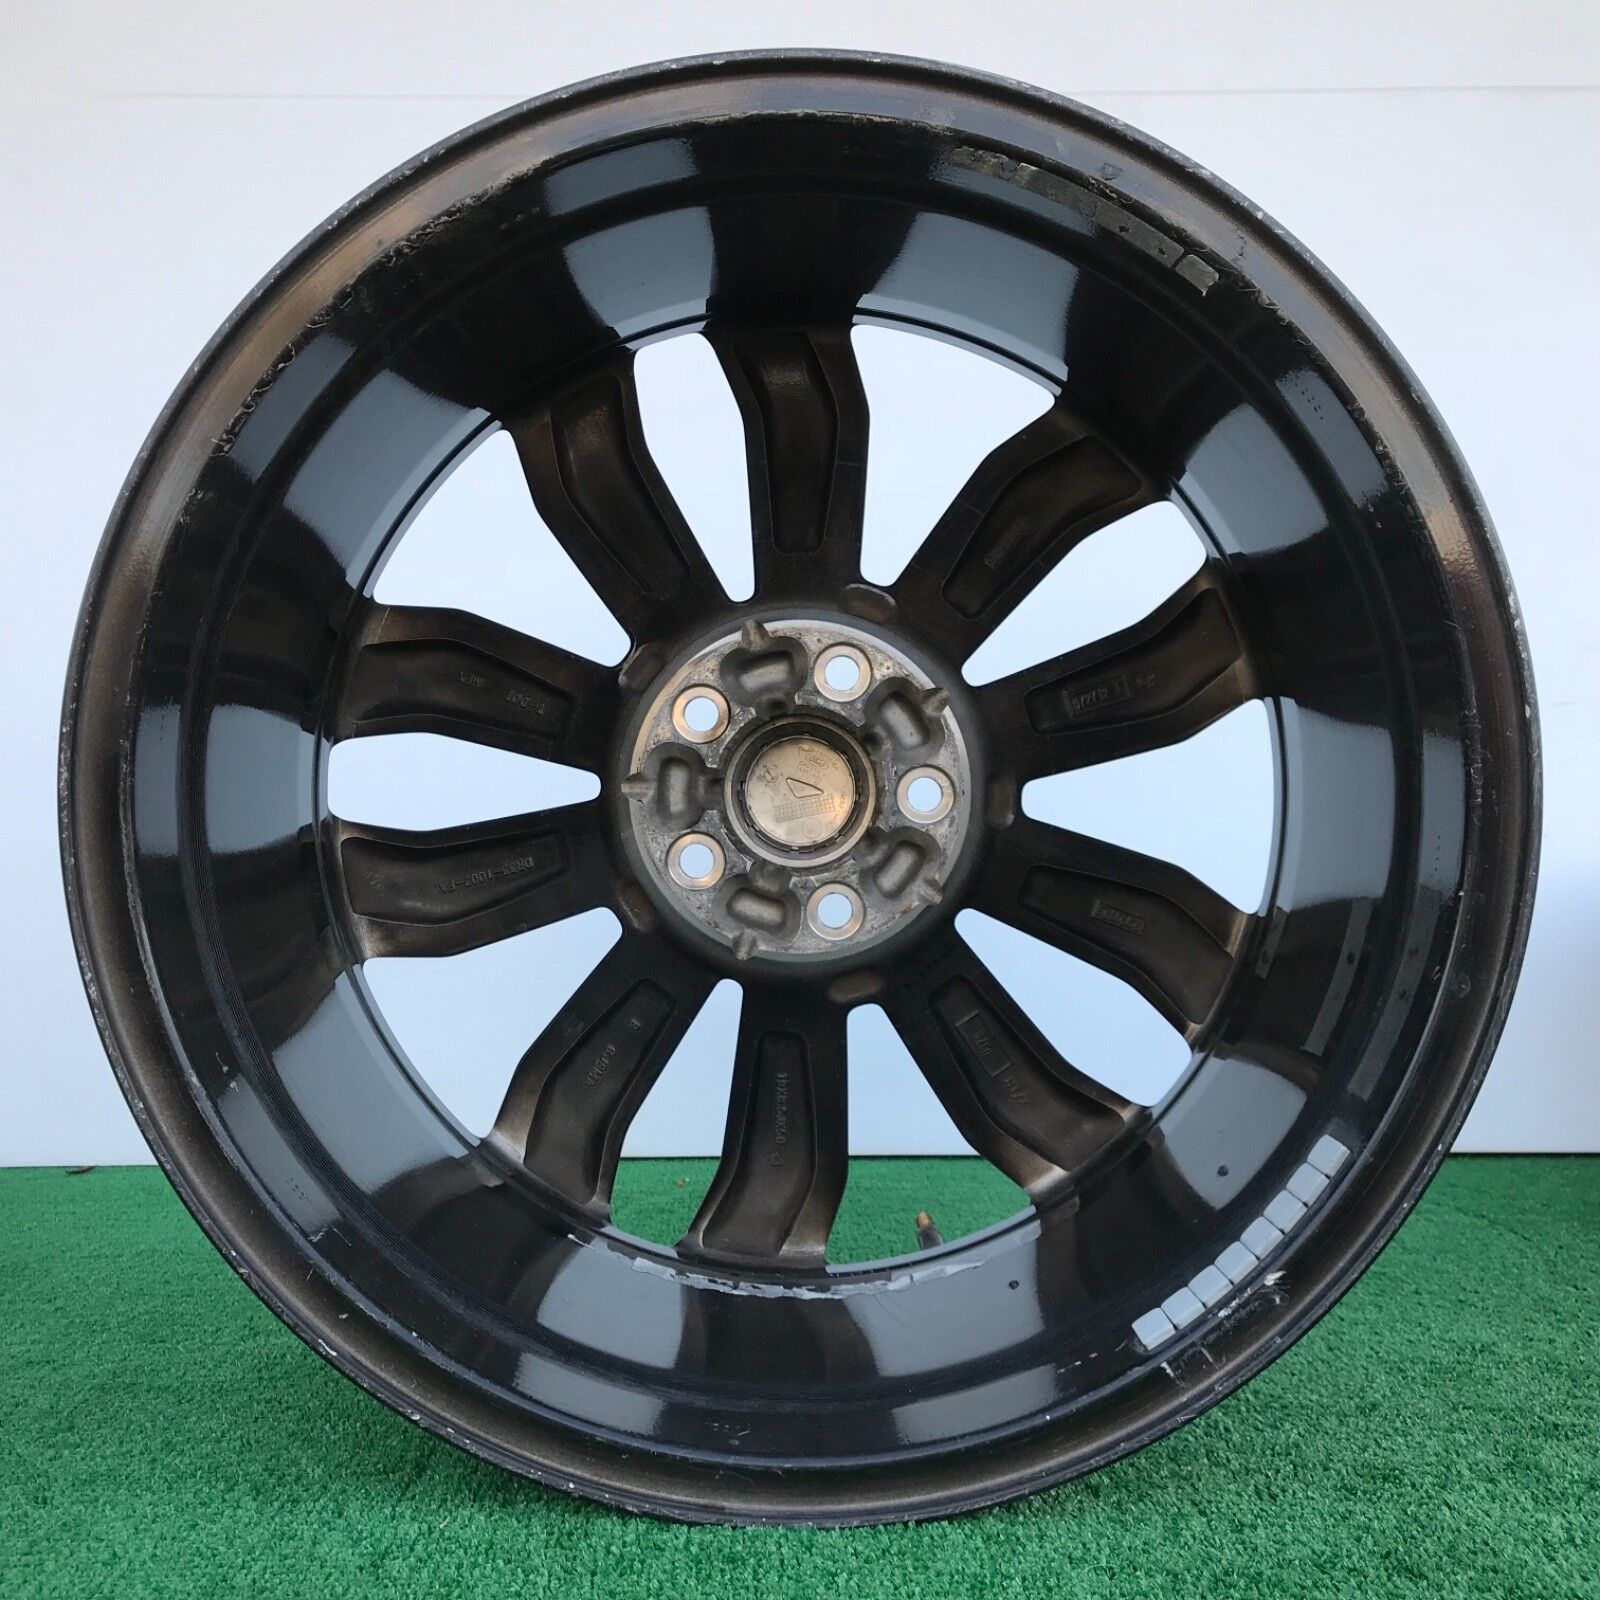 Used 2005 Ford GT Wheels & Hubcaps for Sale